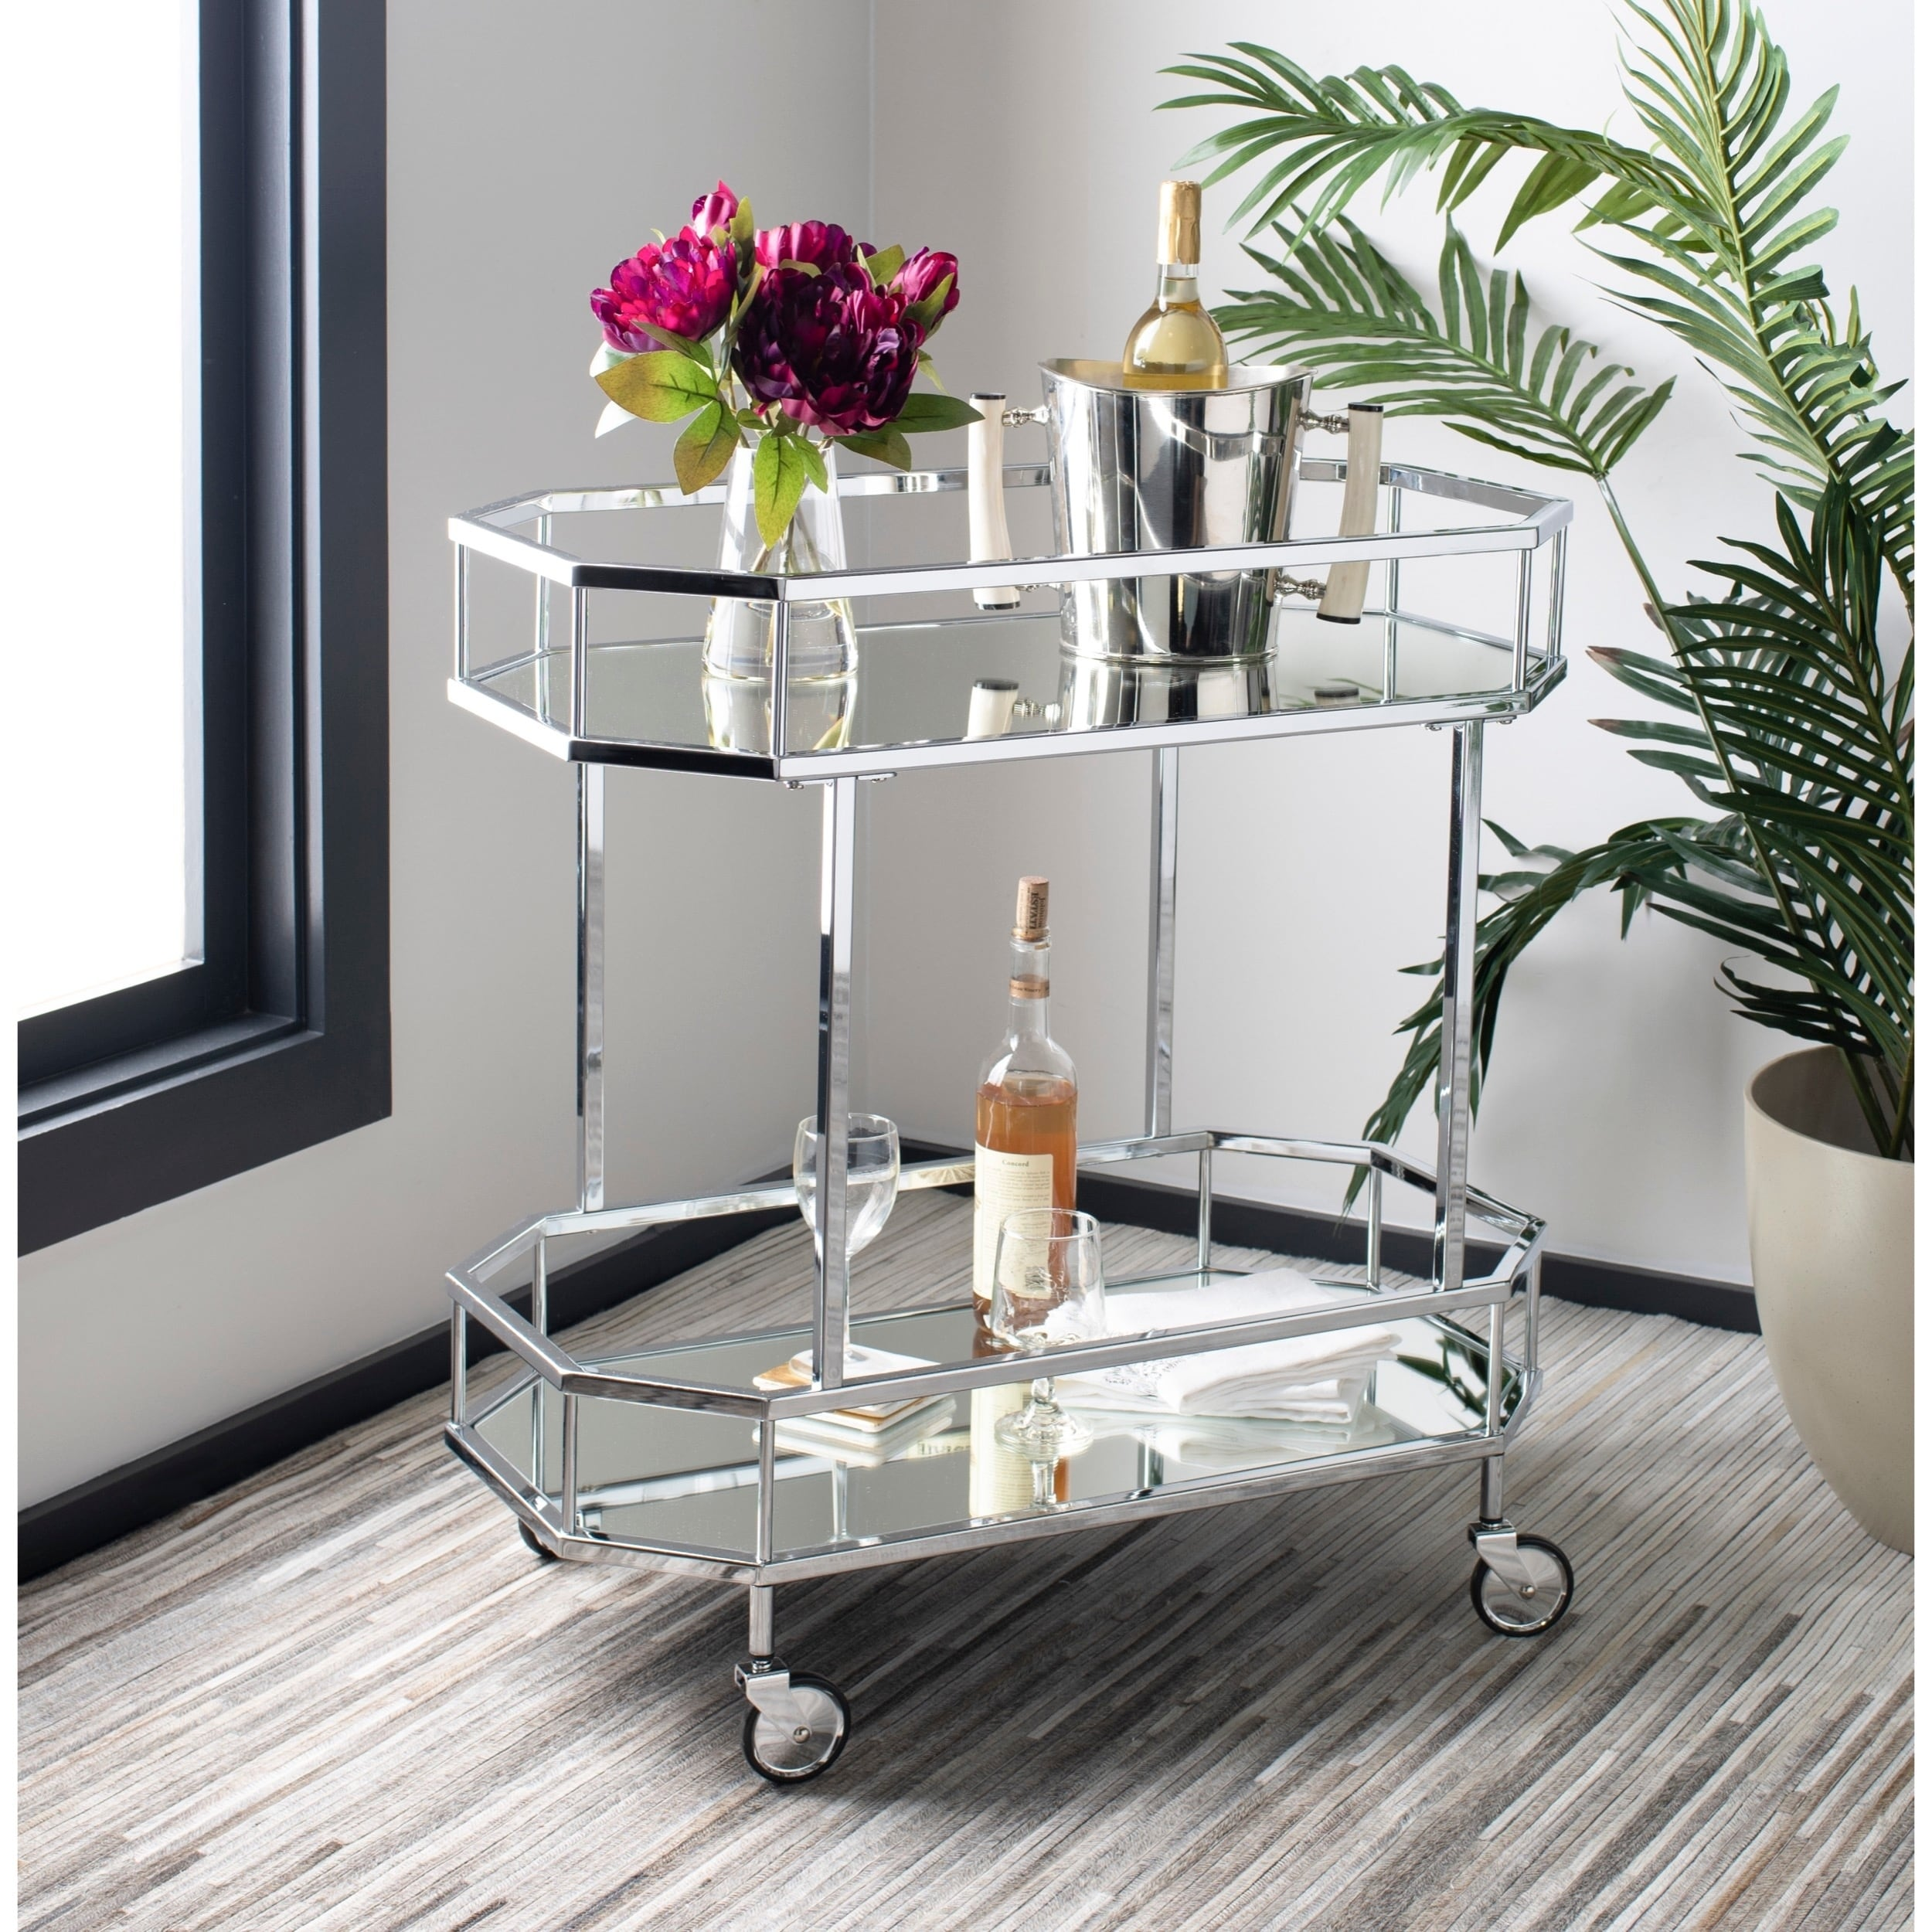 Safavieh Silva 2 Tier Octagon Bar Cart Silver Mirror 29 6 X 16 5 X 29 8 Silver Bar Cart Bar Cart Decor Rolling Bar Cart